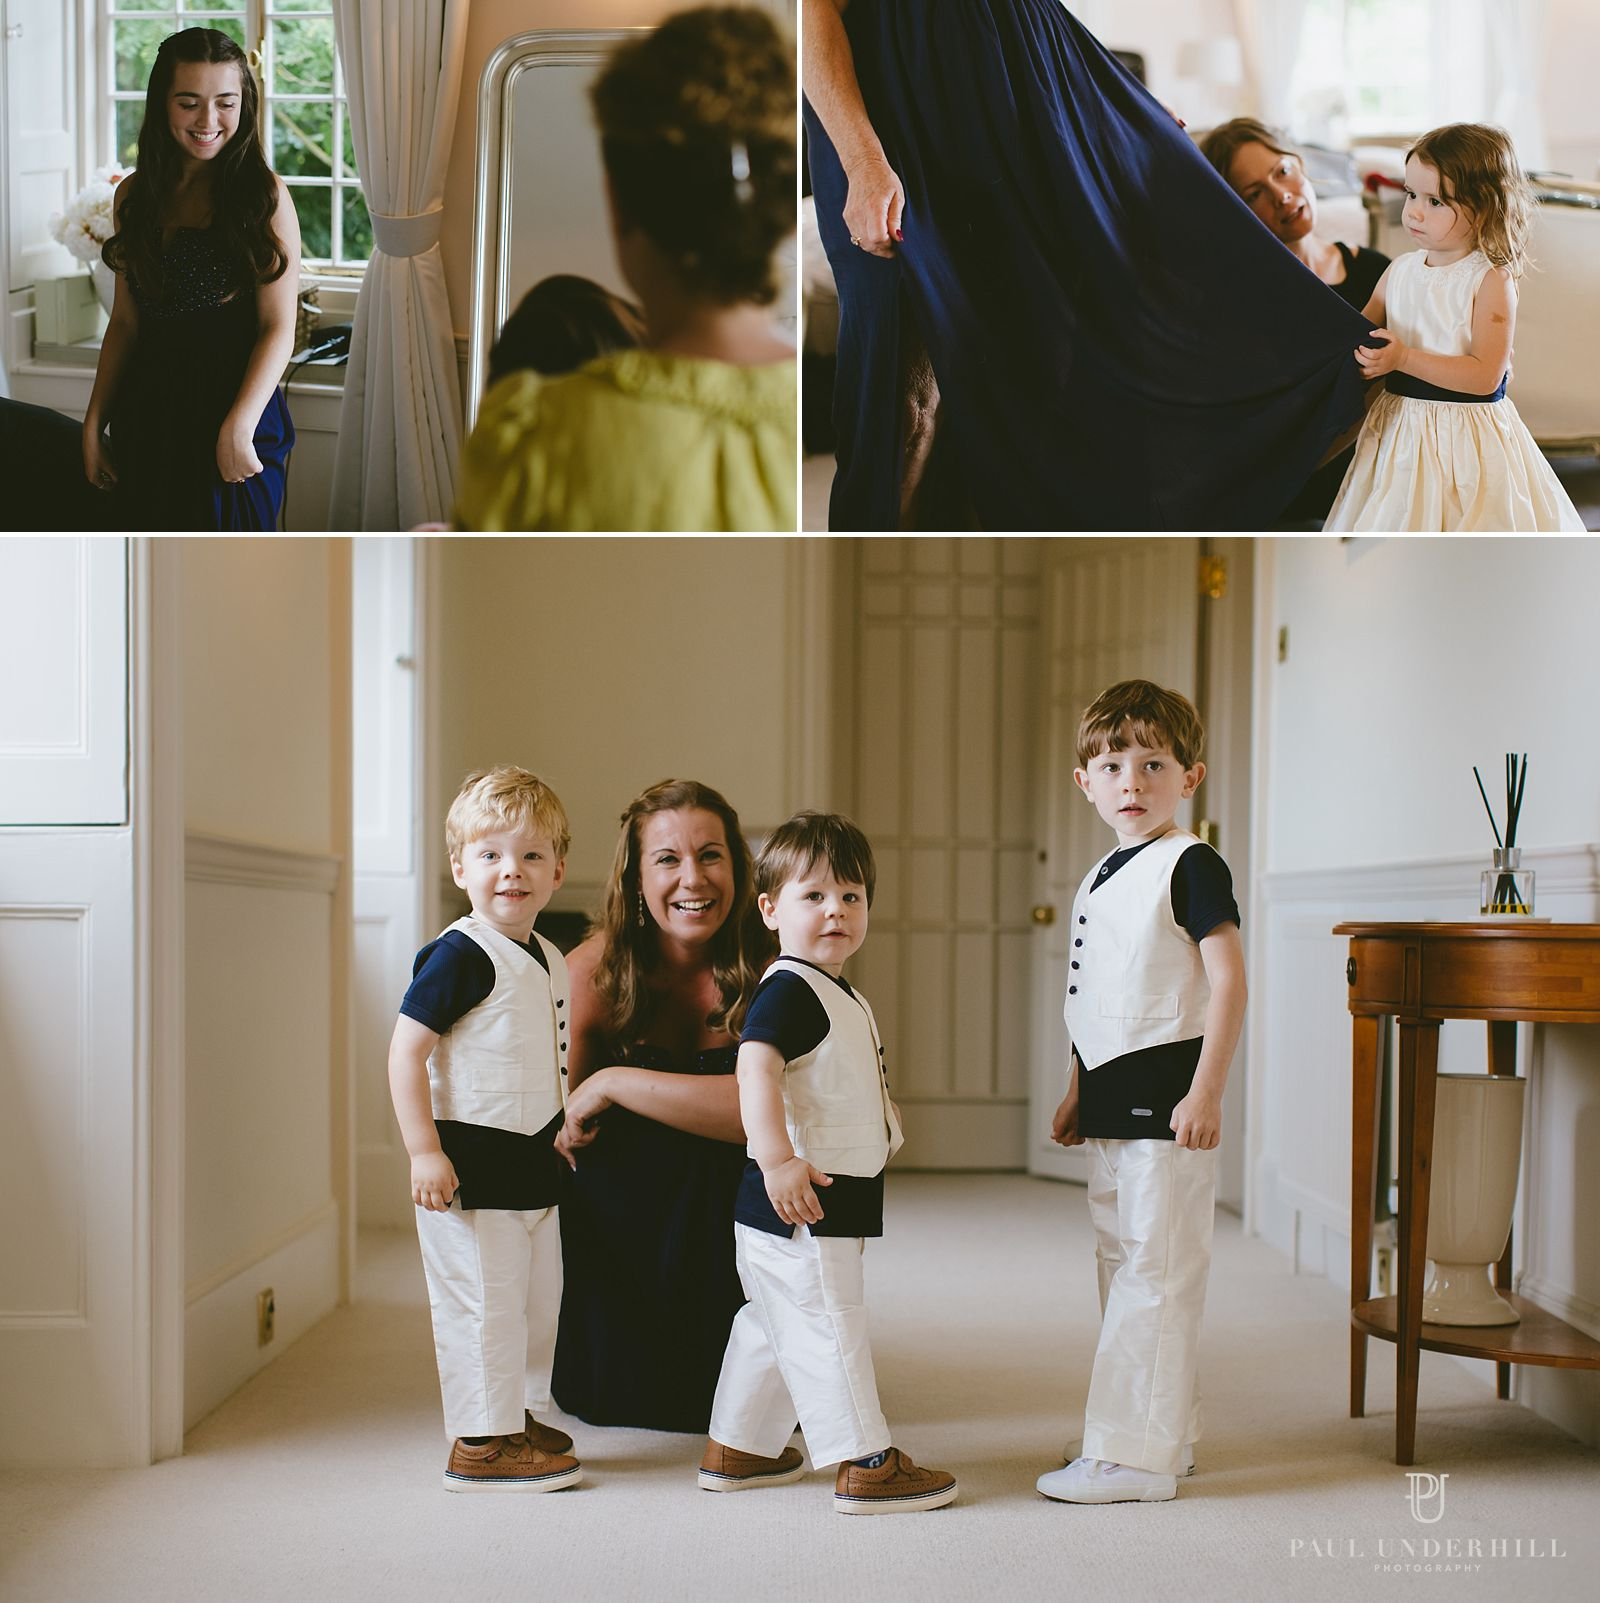 candid-portraits-of-kids-at-wedding